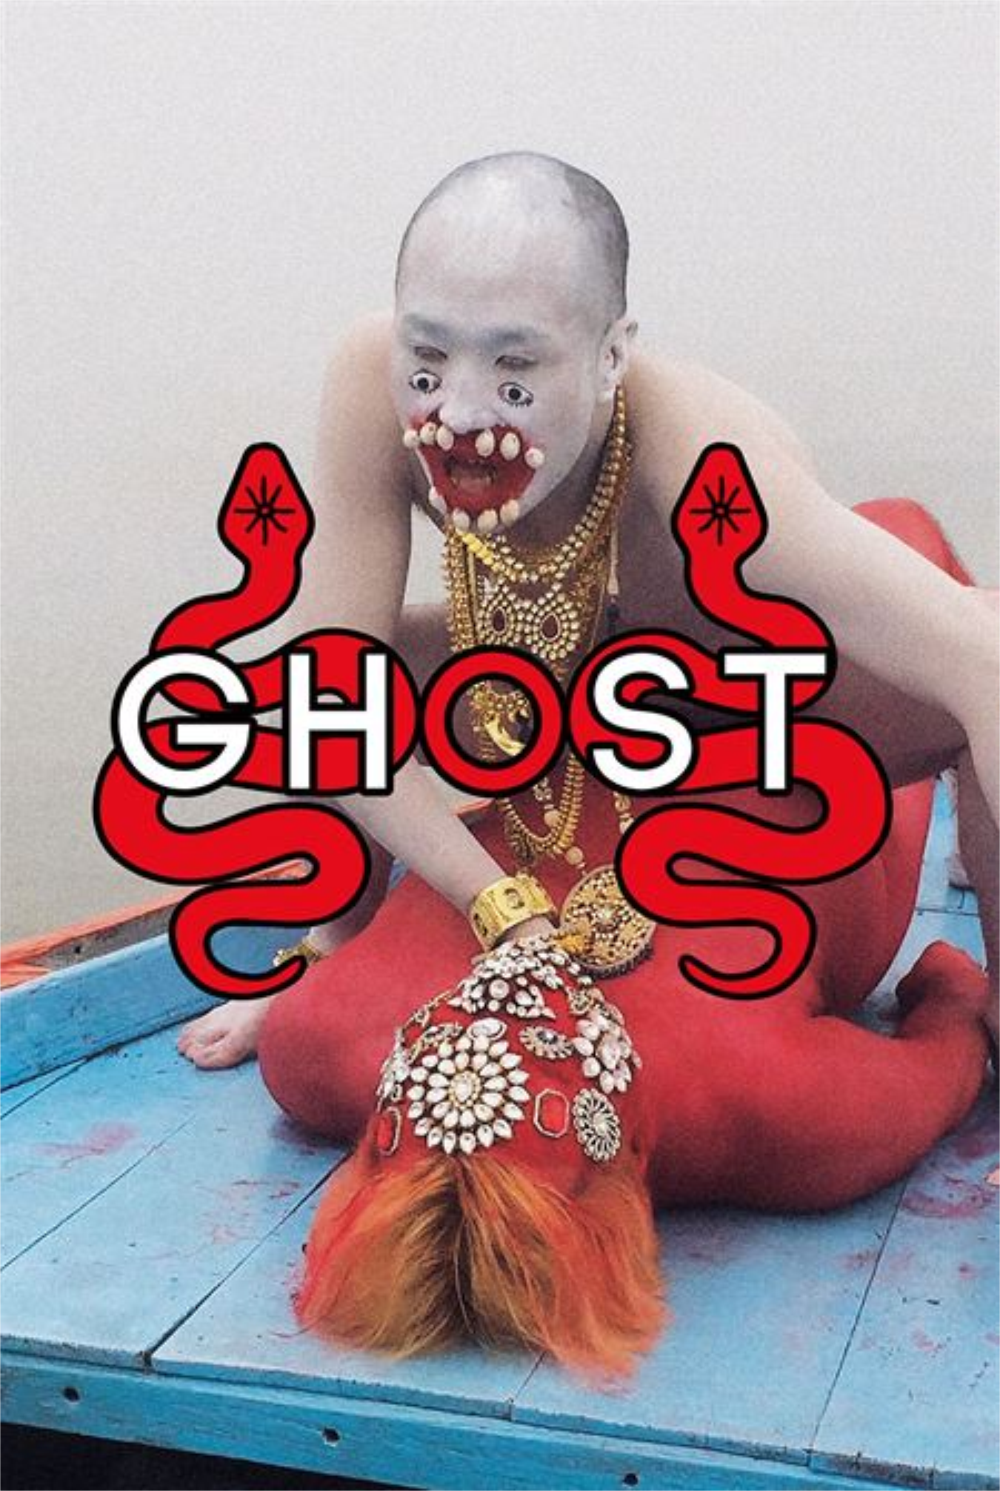 Tianzhuo Chen: GHOST